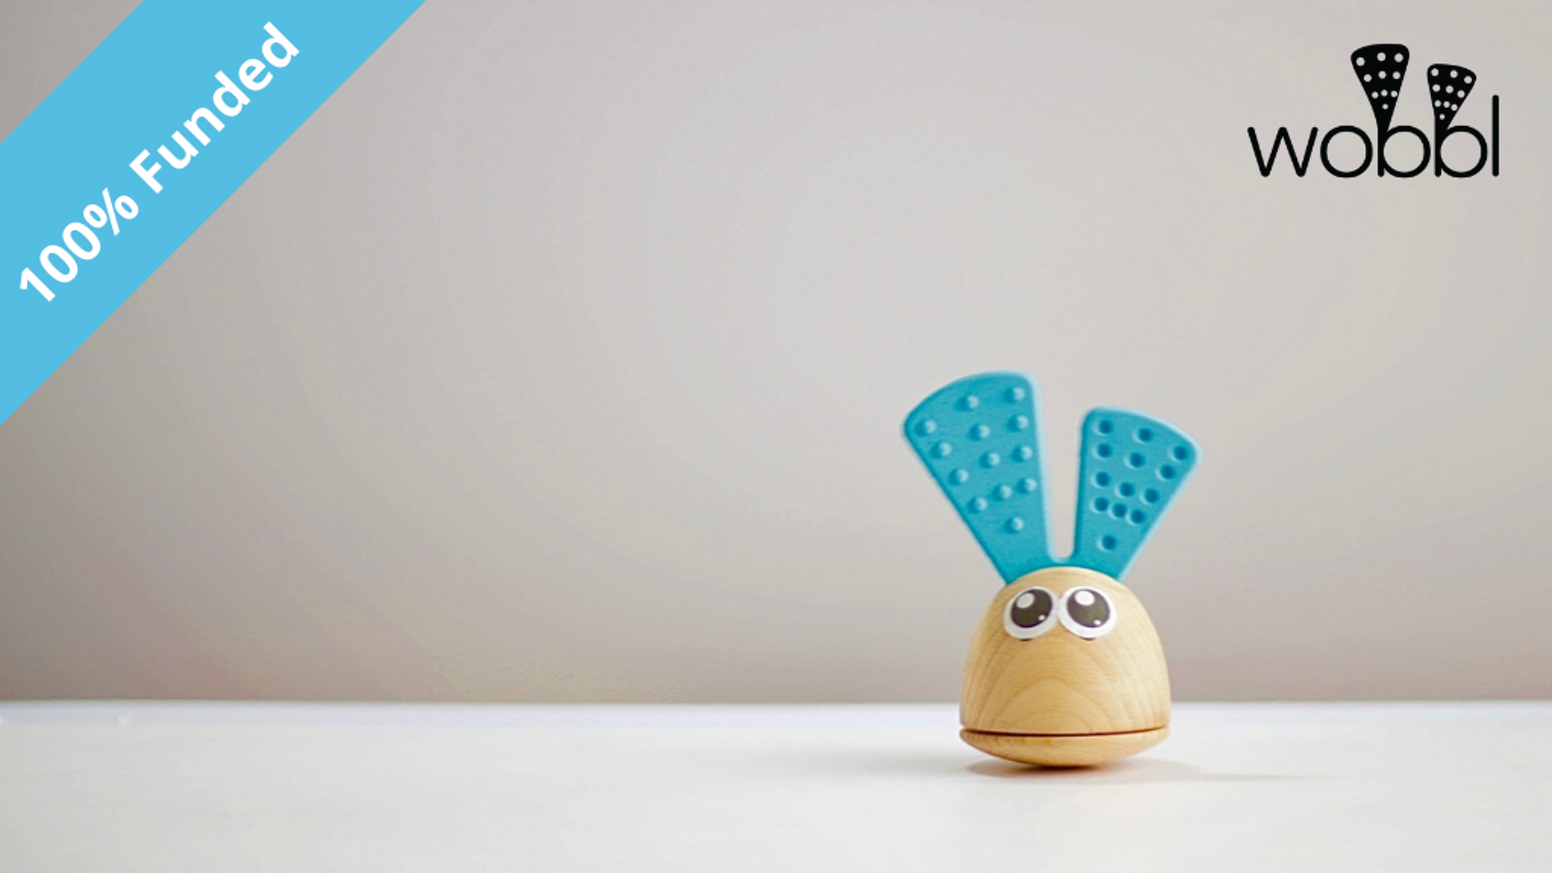 Teether - Rattle - Tummy Time toy.Montessori inspired and backed by developmental science. Handcrafted from beechwood and 100% food grade silicone. Safety tested.